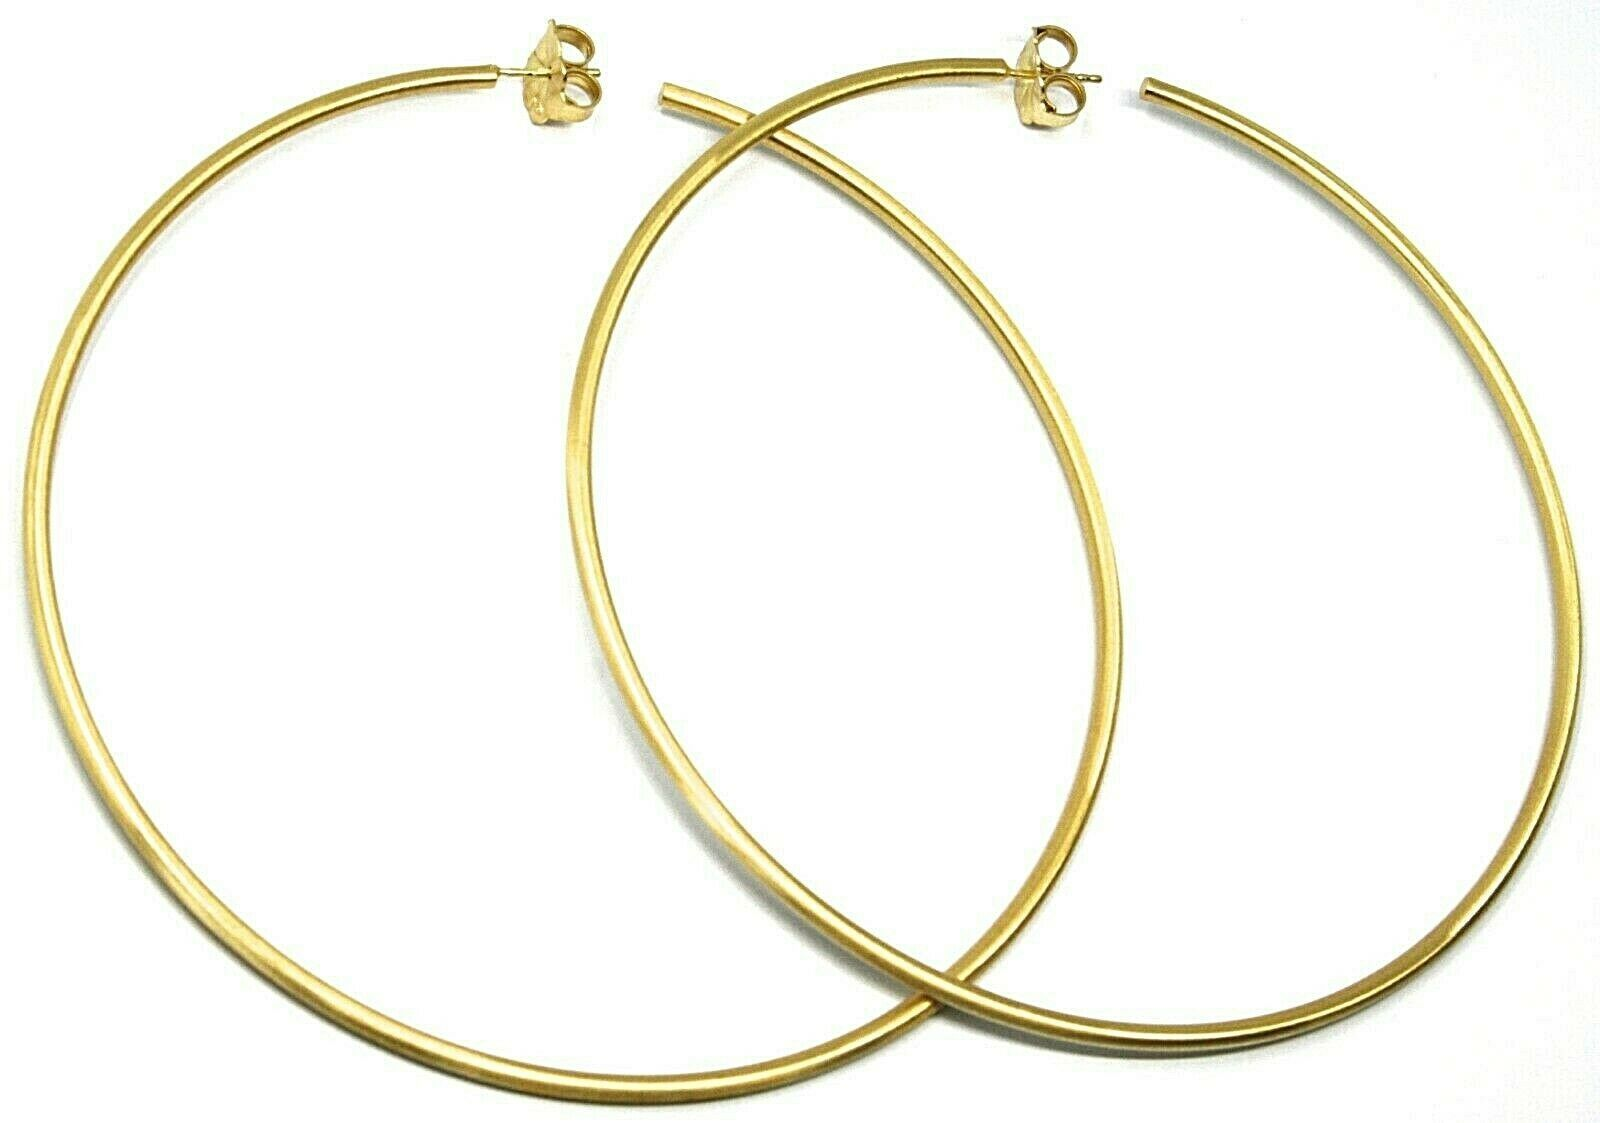 925 STERLING SILVER CIRCLE HOOPS BIG EARRINGS, 11cm x 2mm YELLOW SATIN FINISH